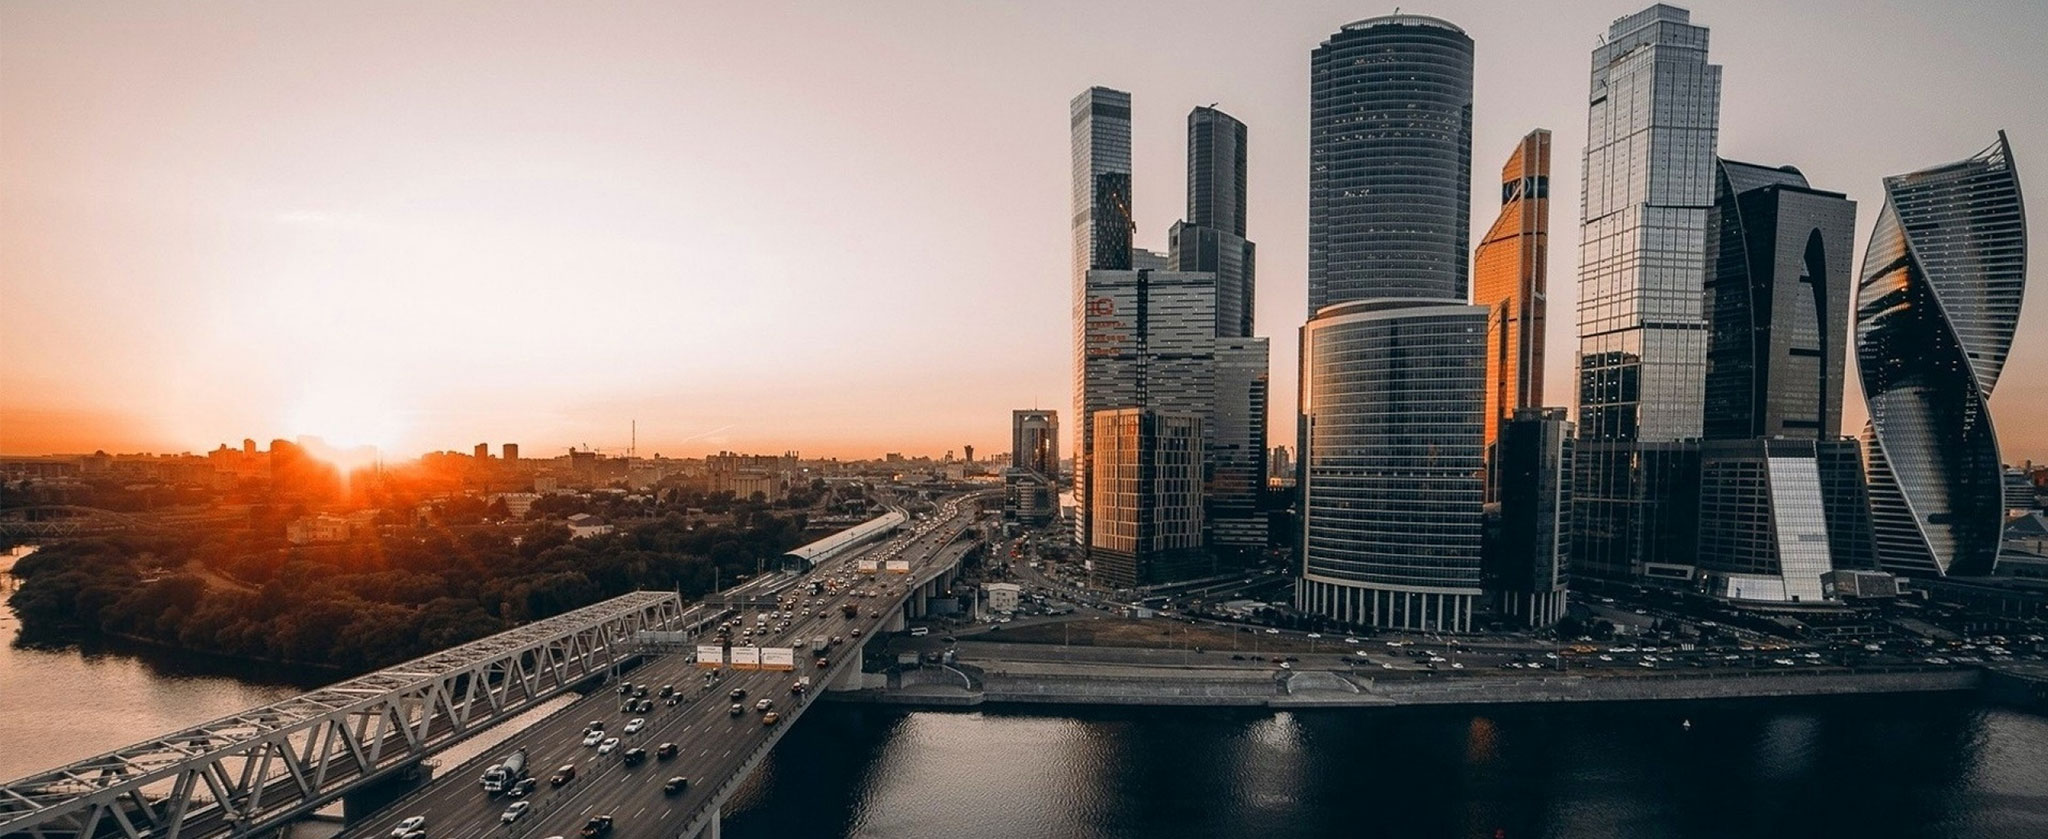 moscow-dream-city